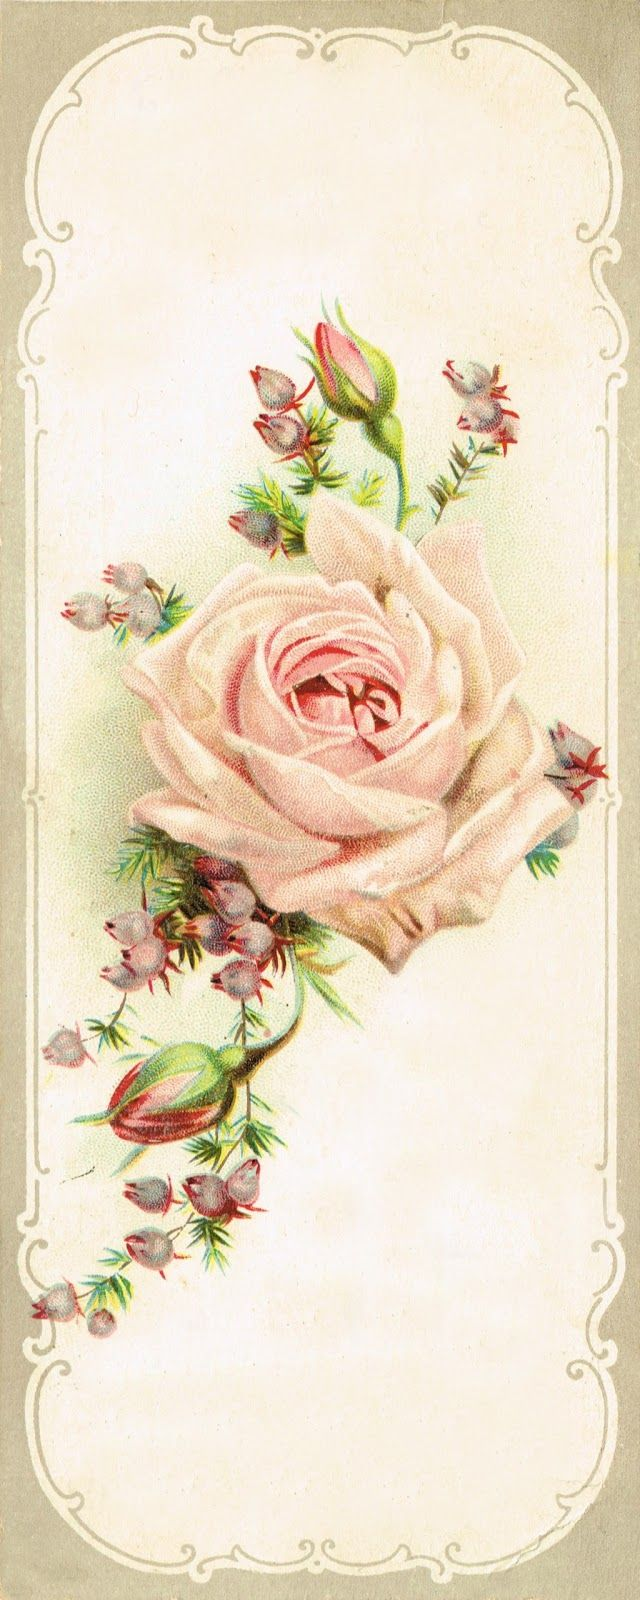 Knick of Time: Antique Graphics Wednesday - Beautiful Rose Image